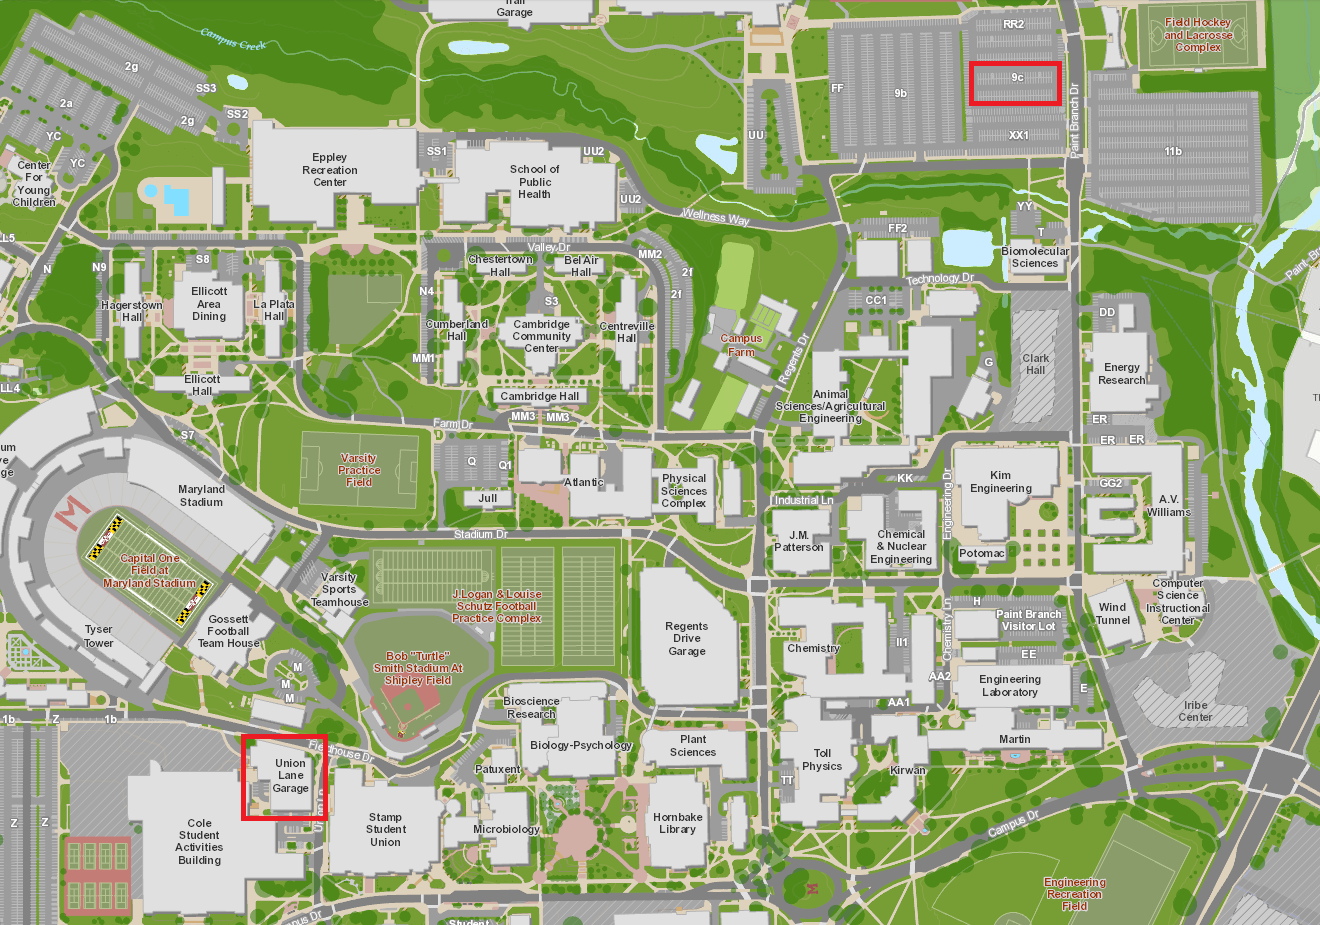 University Of Maryland Parking Maps And App